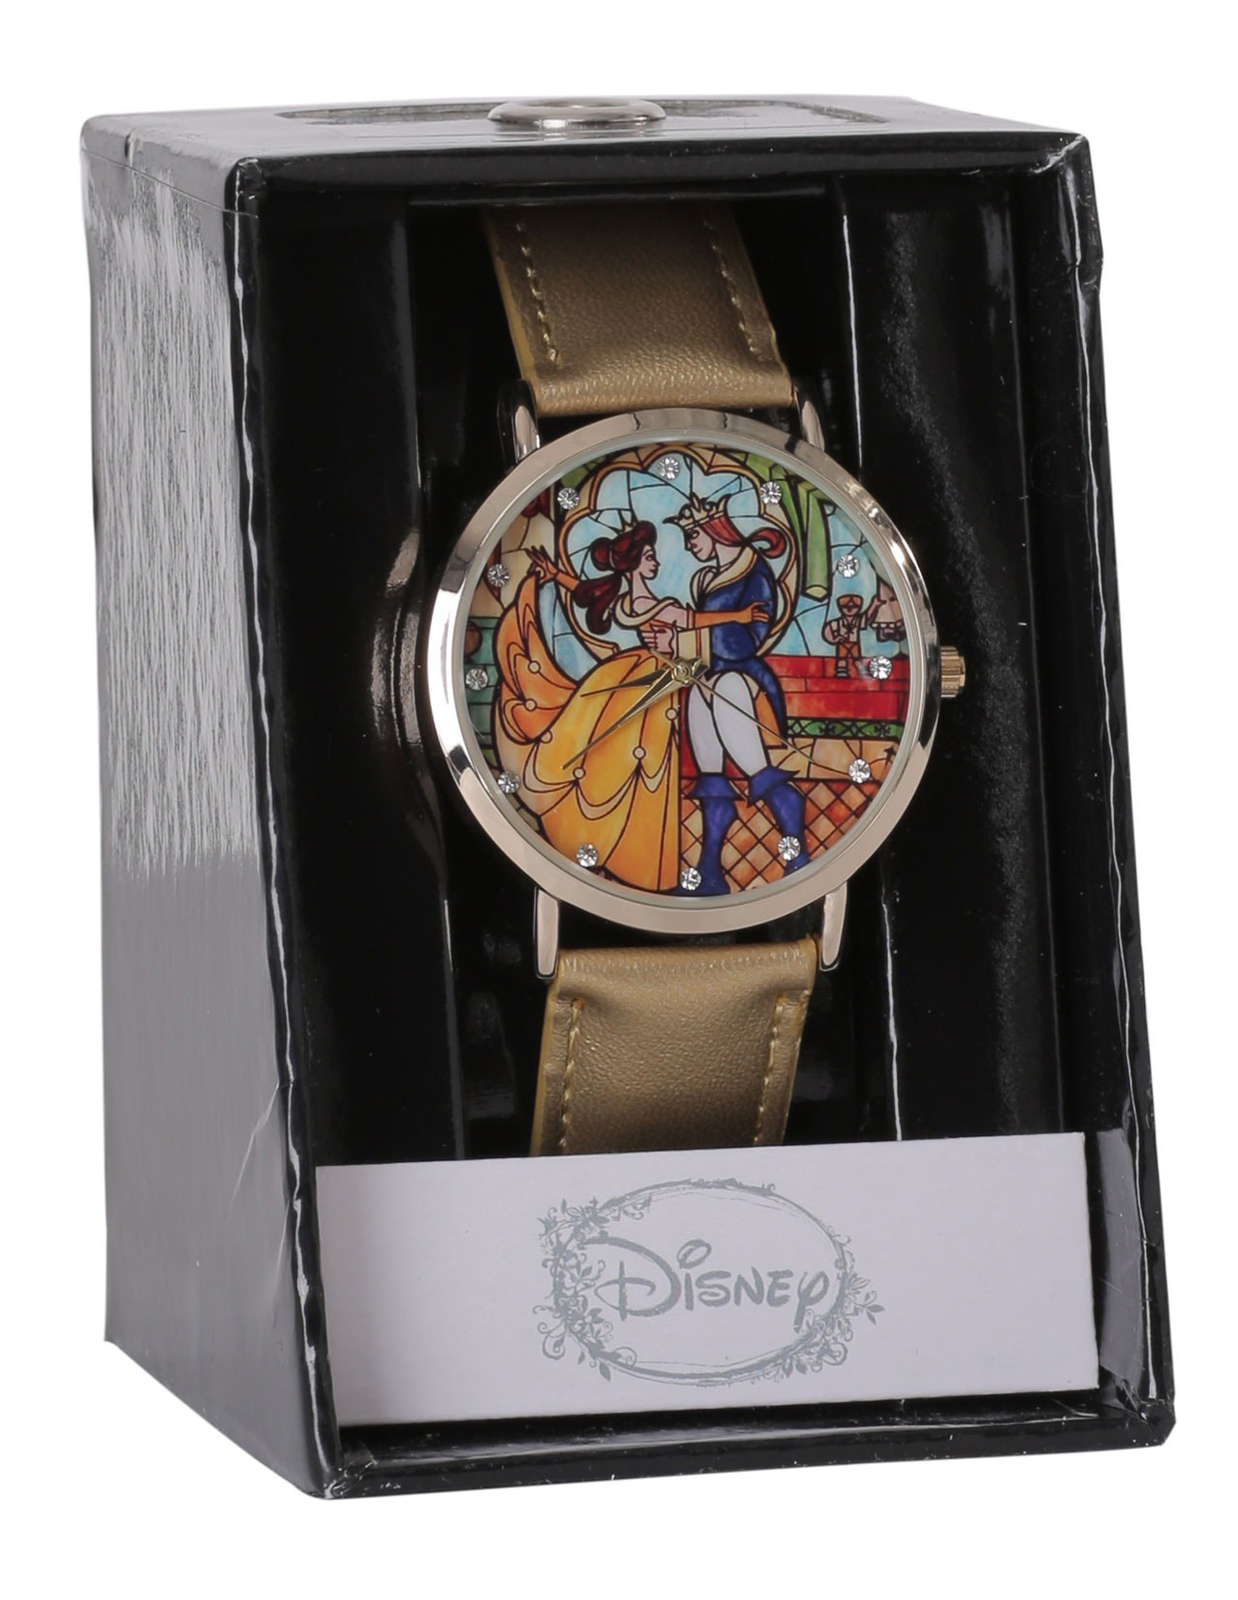 Disney: Beauty and the Beast - Stained Glass Strap Watch image